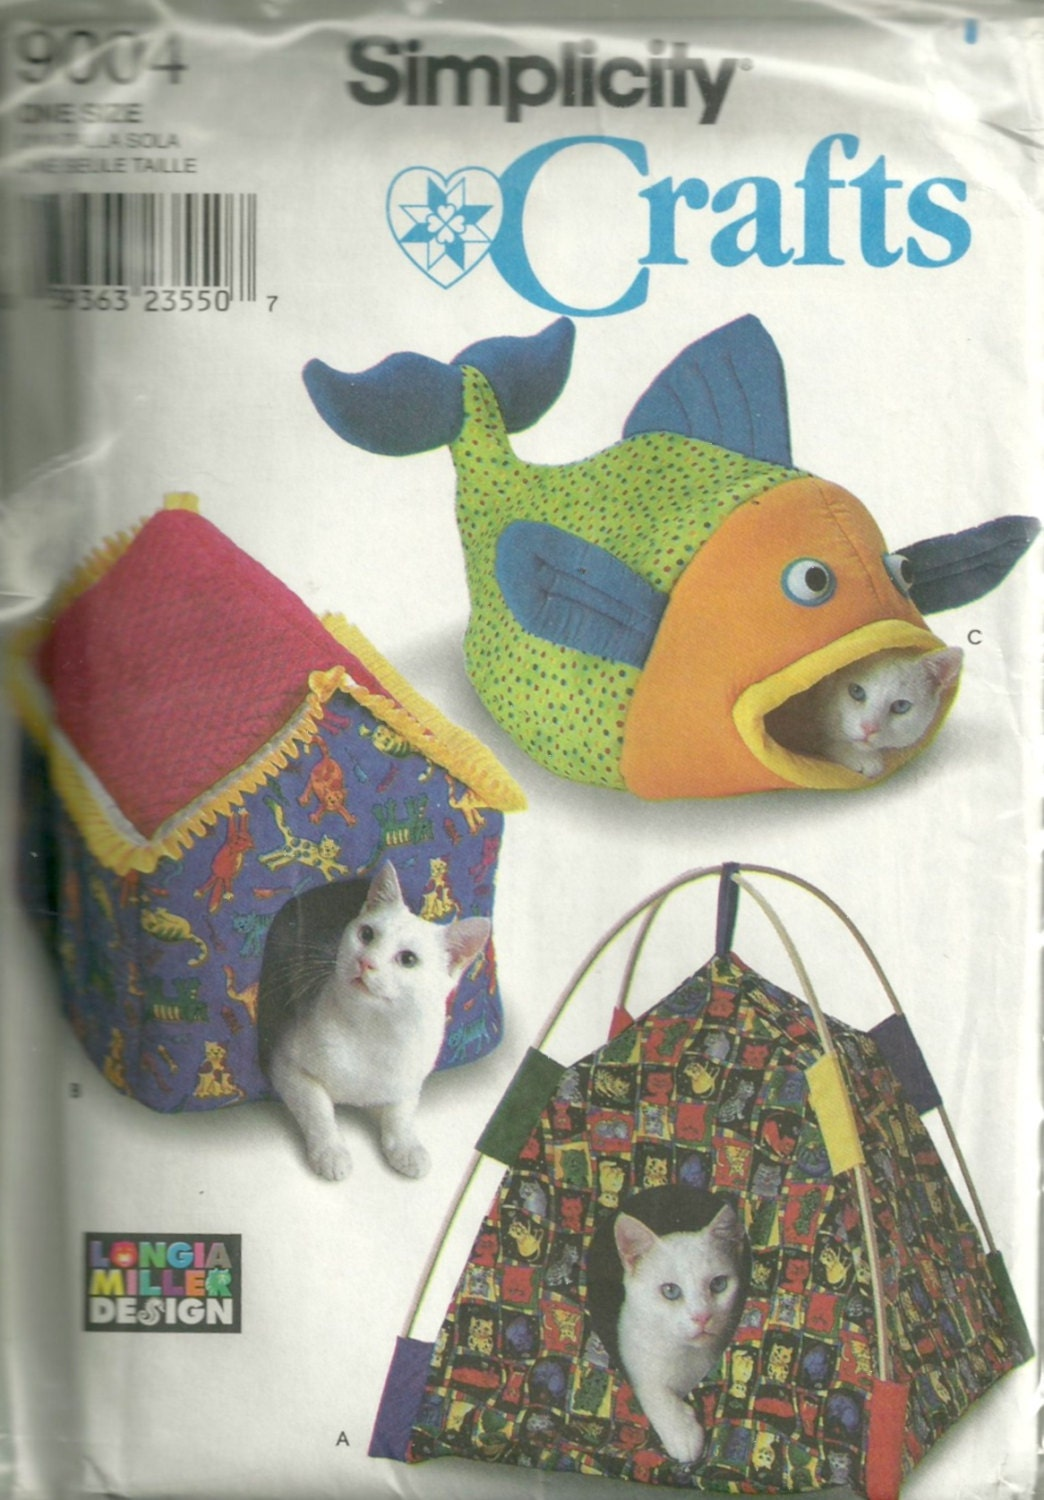 Simplicity 9004 cat bed sewing pattern 3 designs tent bed simplicity 9004 cat bed sewing pattern 3 designs tent bed house bed and fish bed animal sewing pattern uncut longia miller jeuxipadfo Image collections